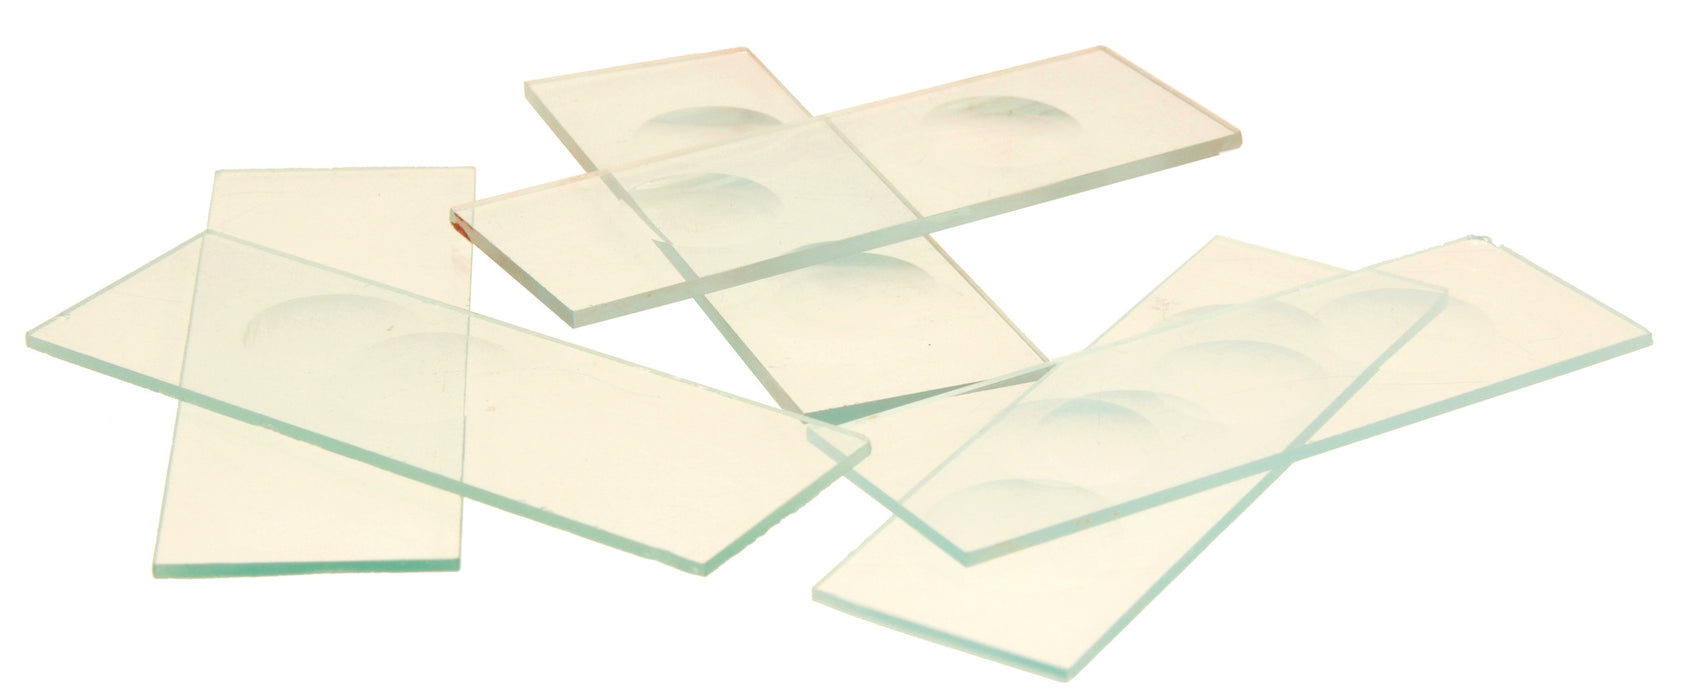 Eisco Labs Microscope Slides, With Double Concavity, Pack of 10